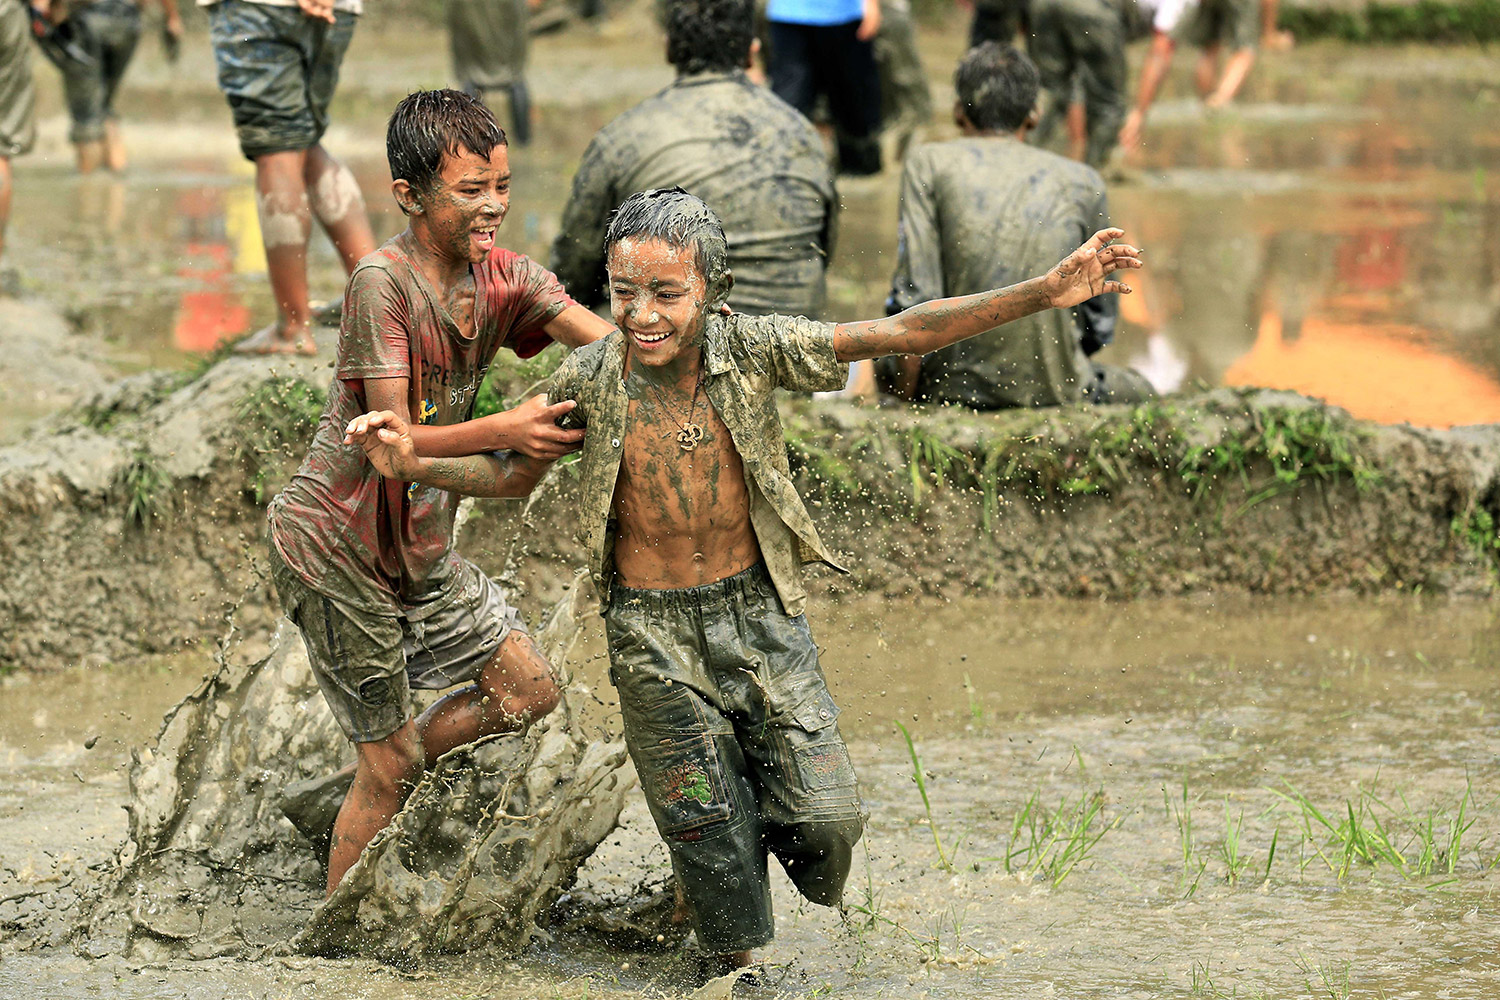 Two boys play in the mud during Asar 15 celebrations. Photo: Aaditya Chand